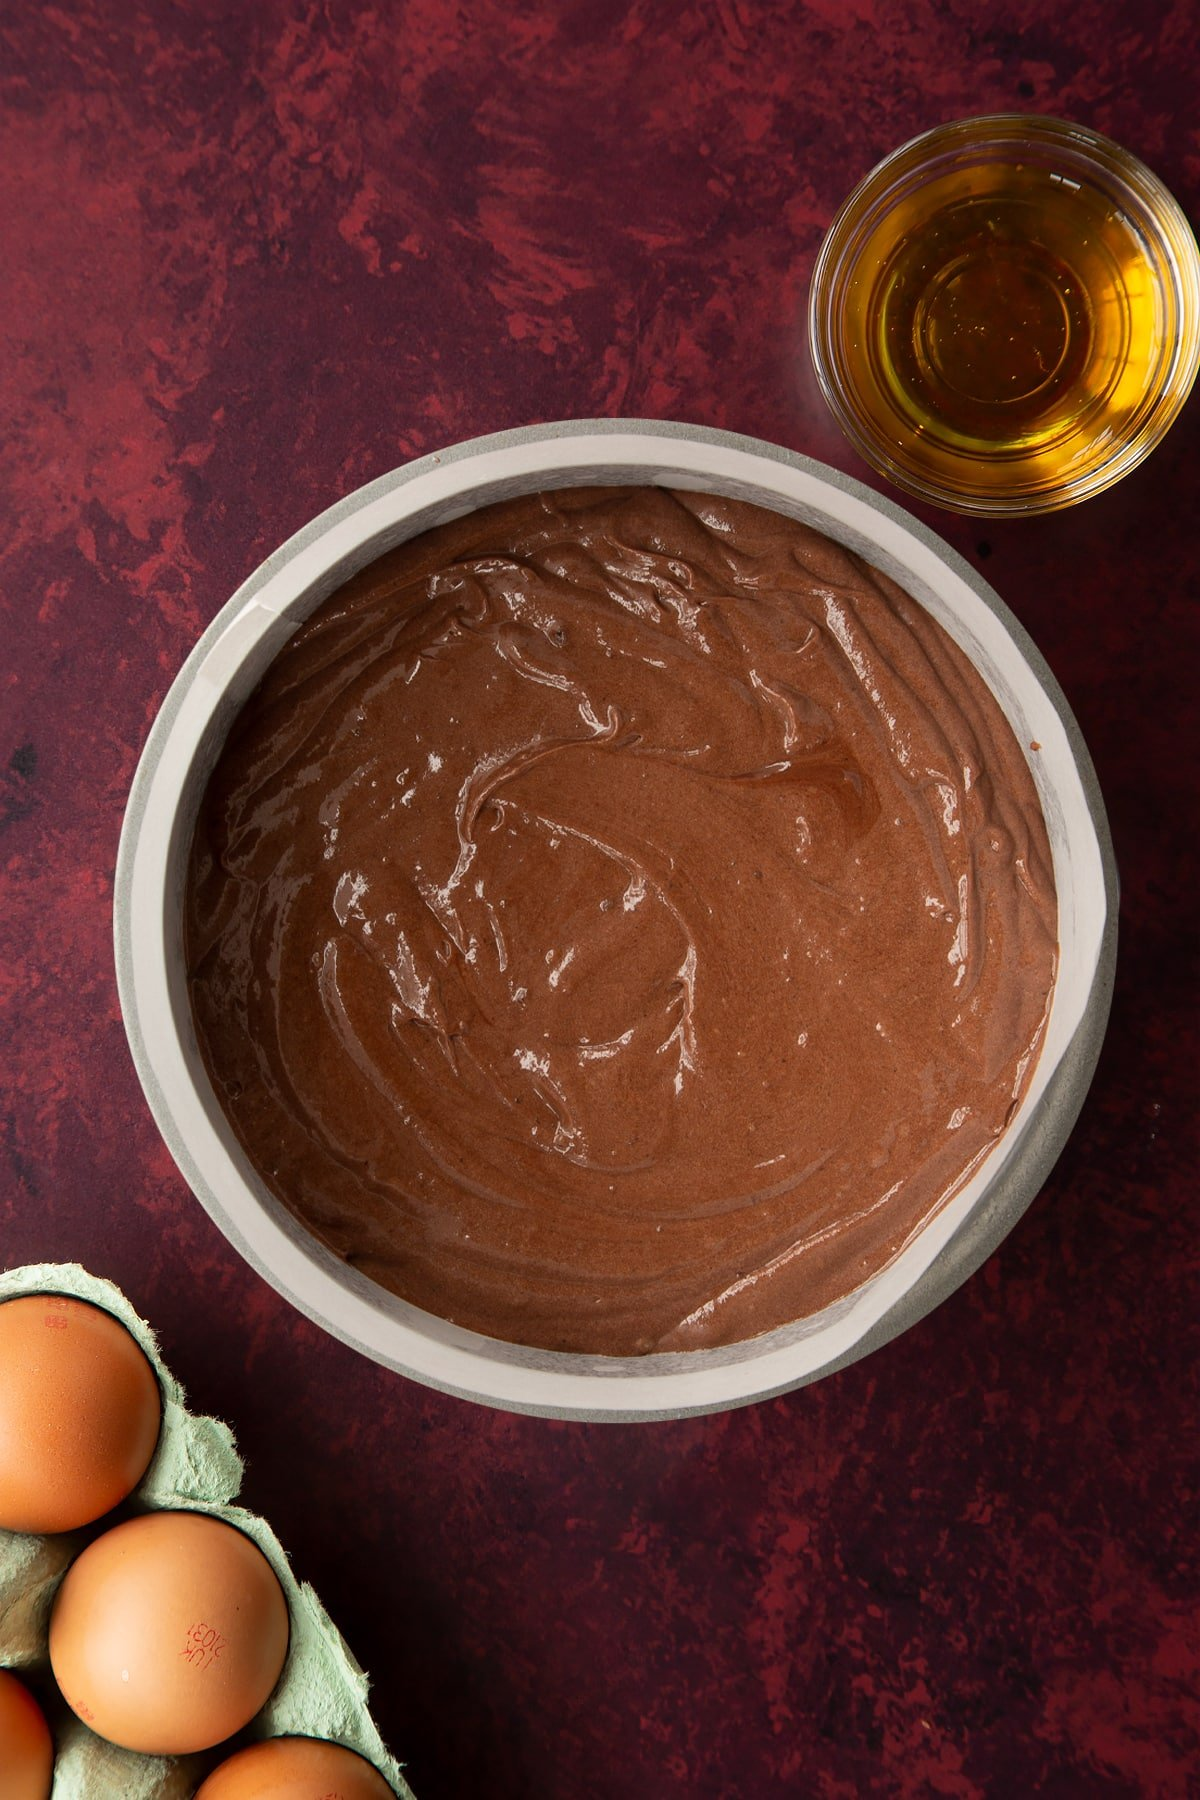 Chocolate drizzle cake batter in a lined tin.